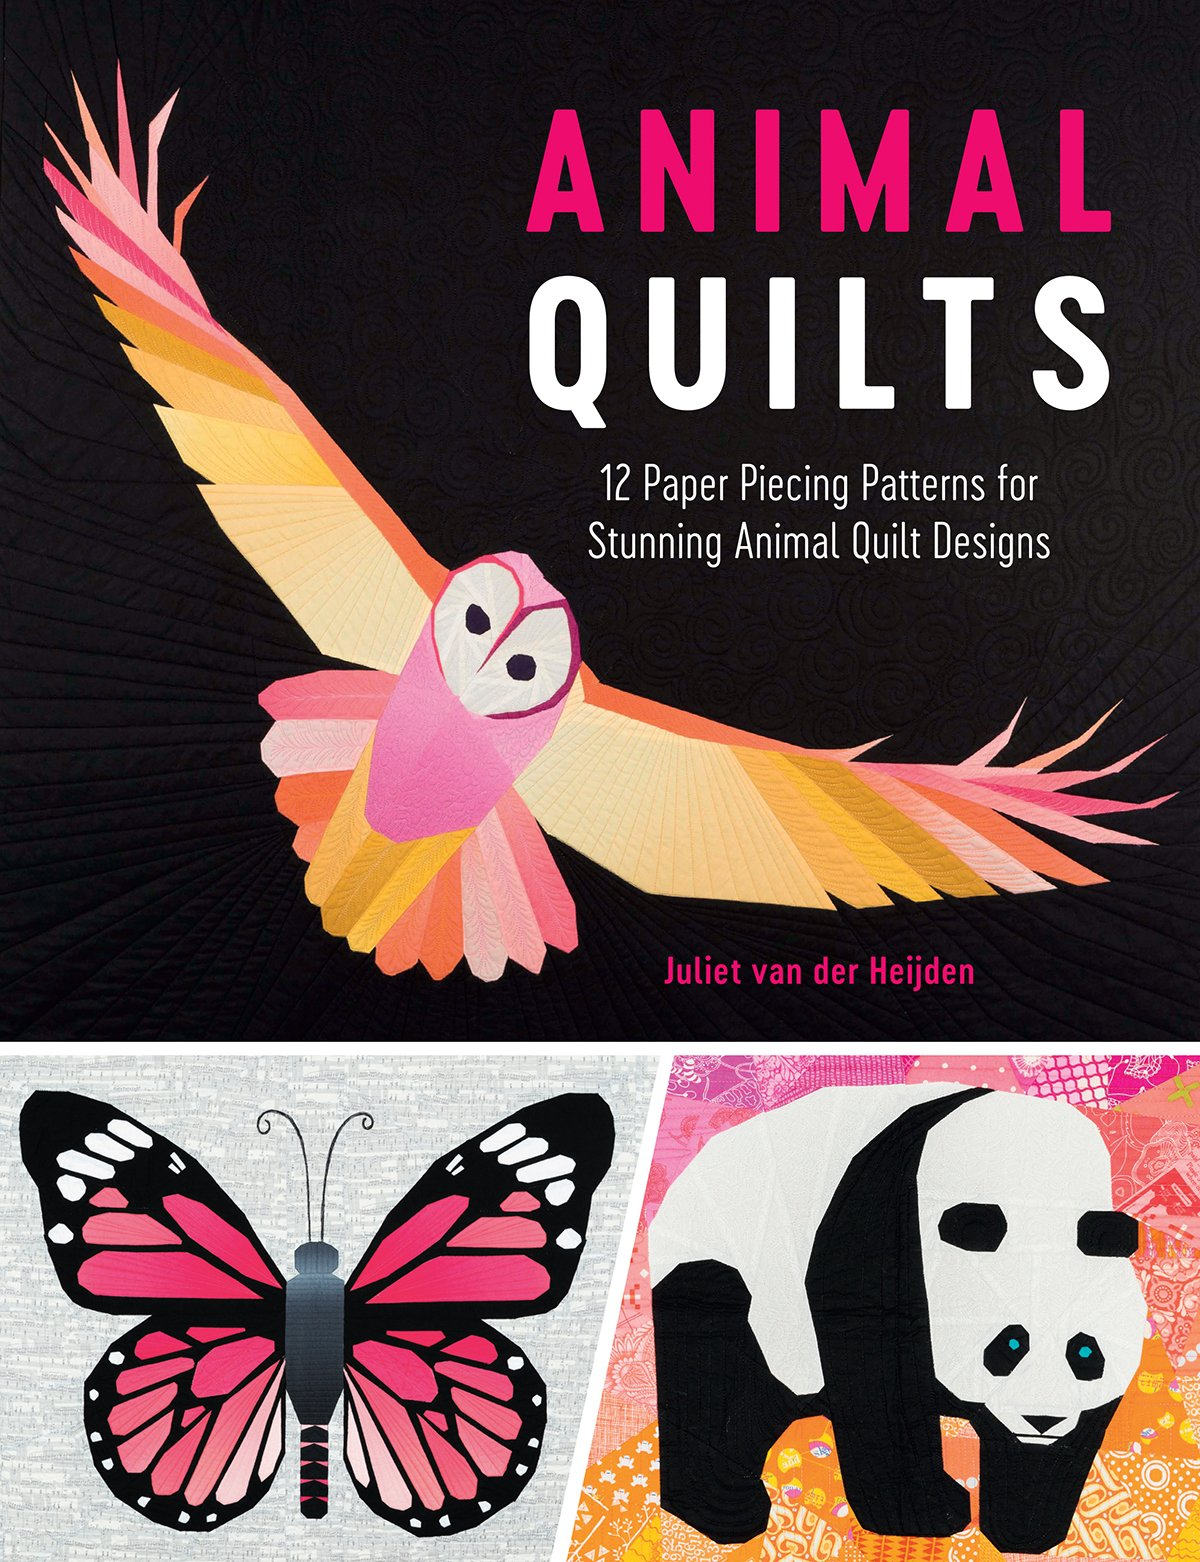 photograph about Free Printable Paper Piecing Patterns for Quilting titled Animal Quilts: 12 Paper Piecing Styles for Breathtaking Animal